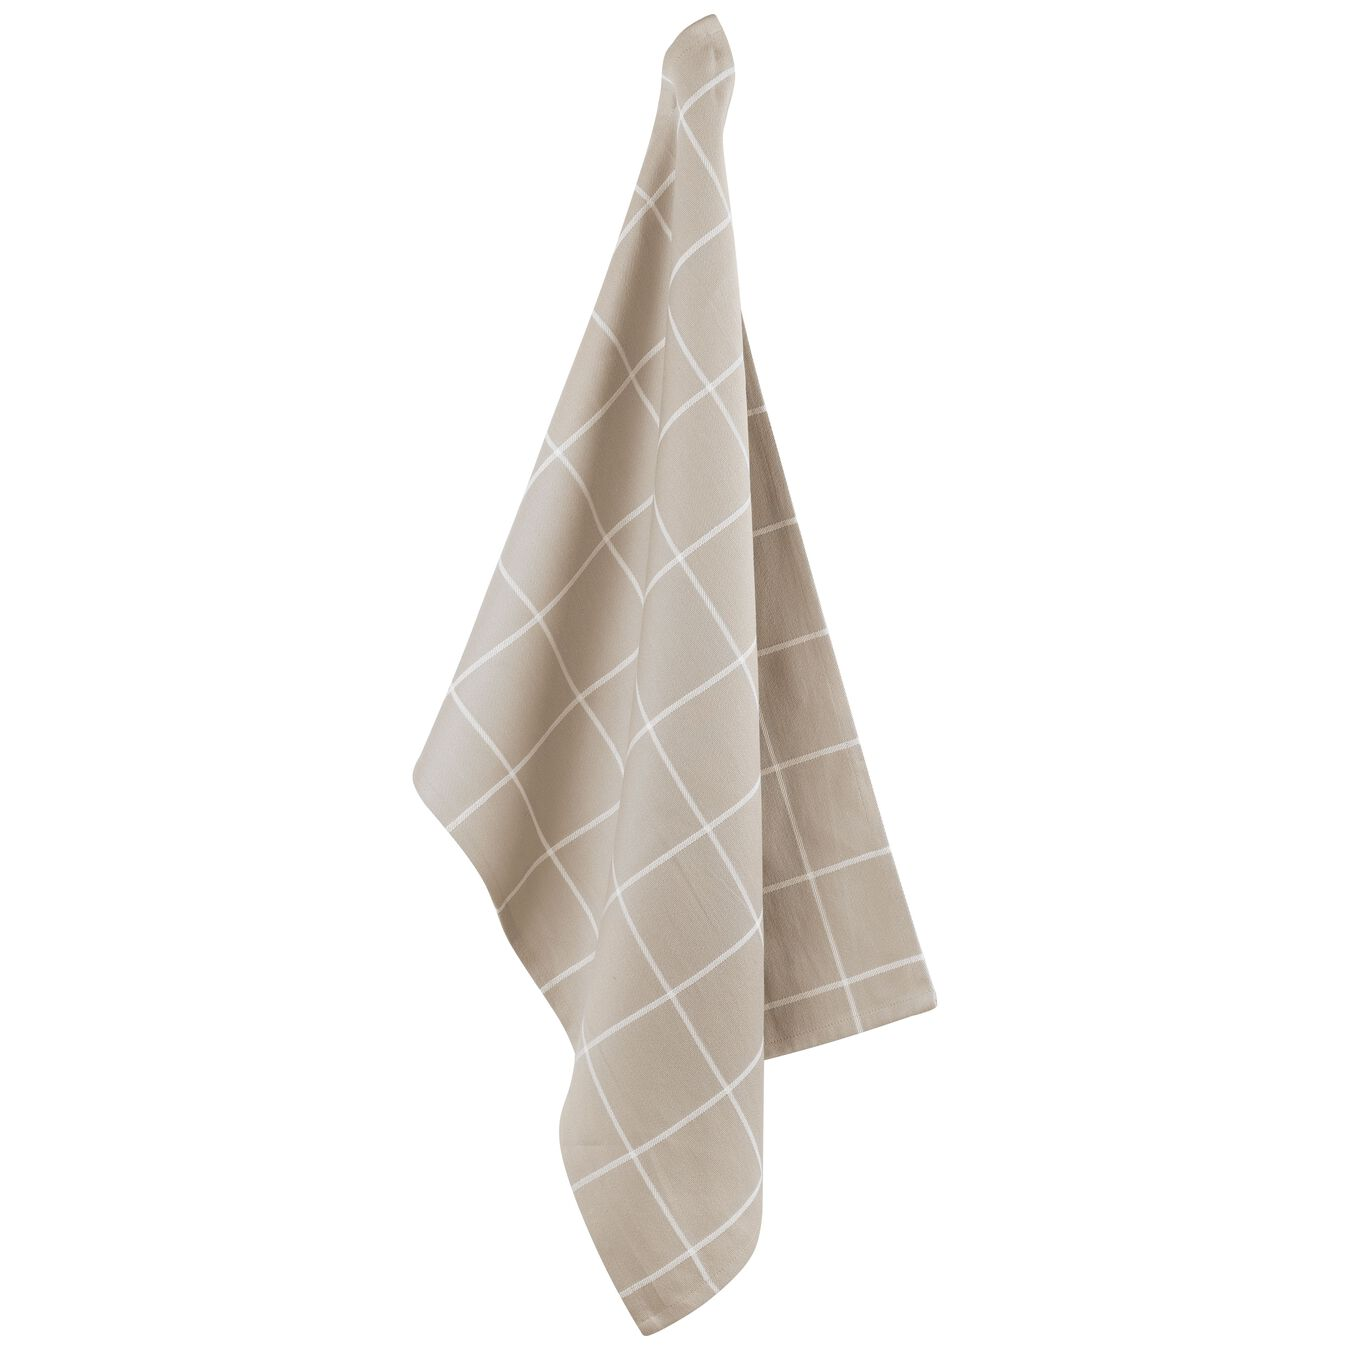 2 Piece 2 Piece Kitchen towel set checkered, taupe,,large 3